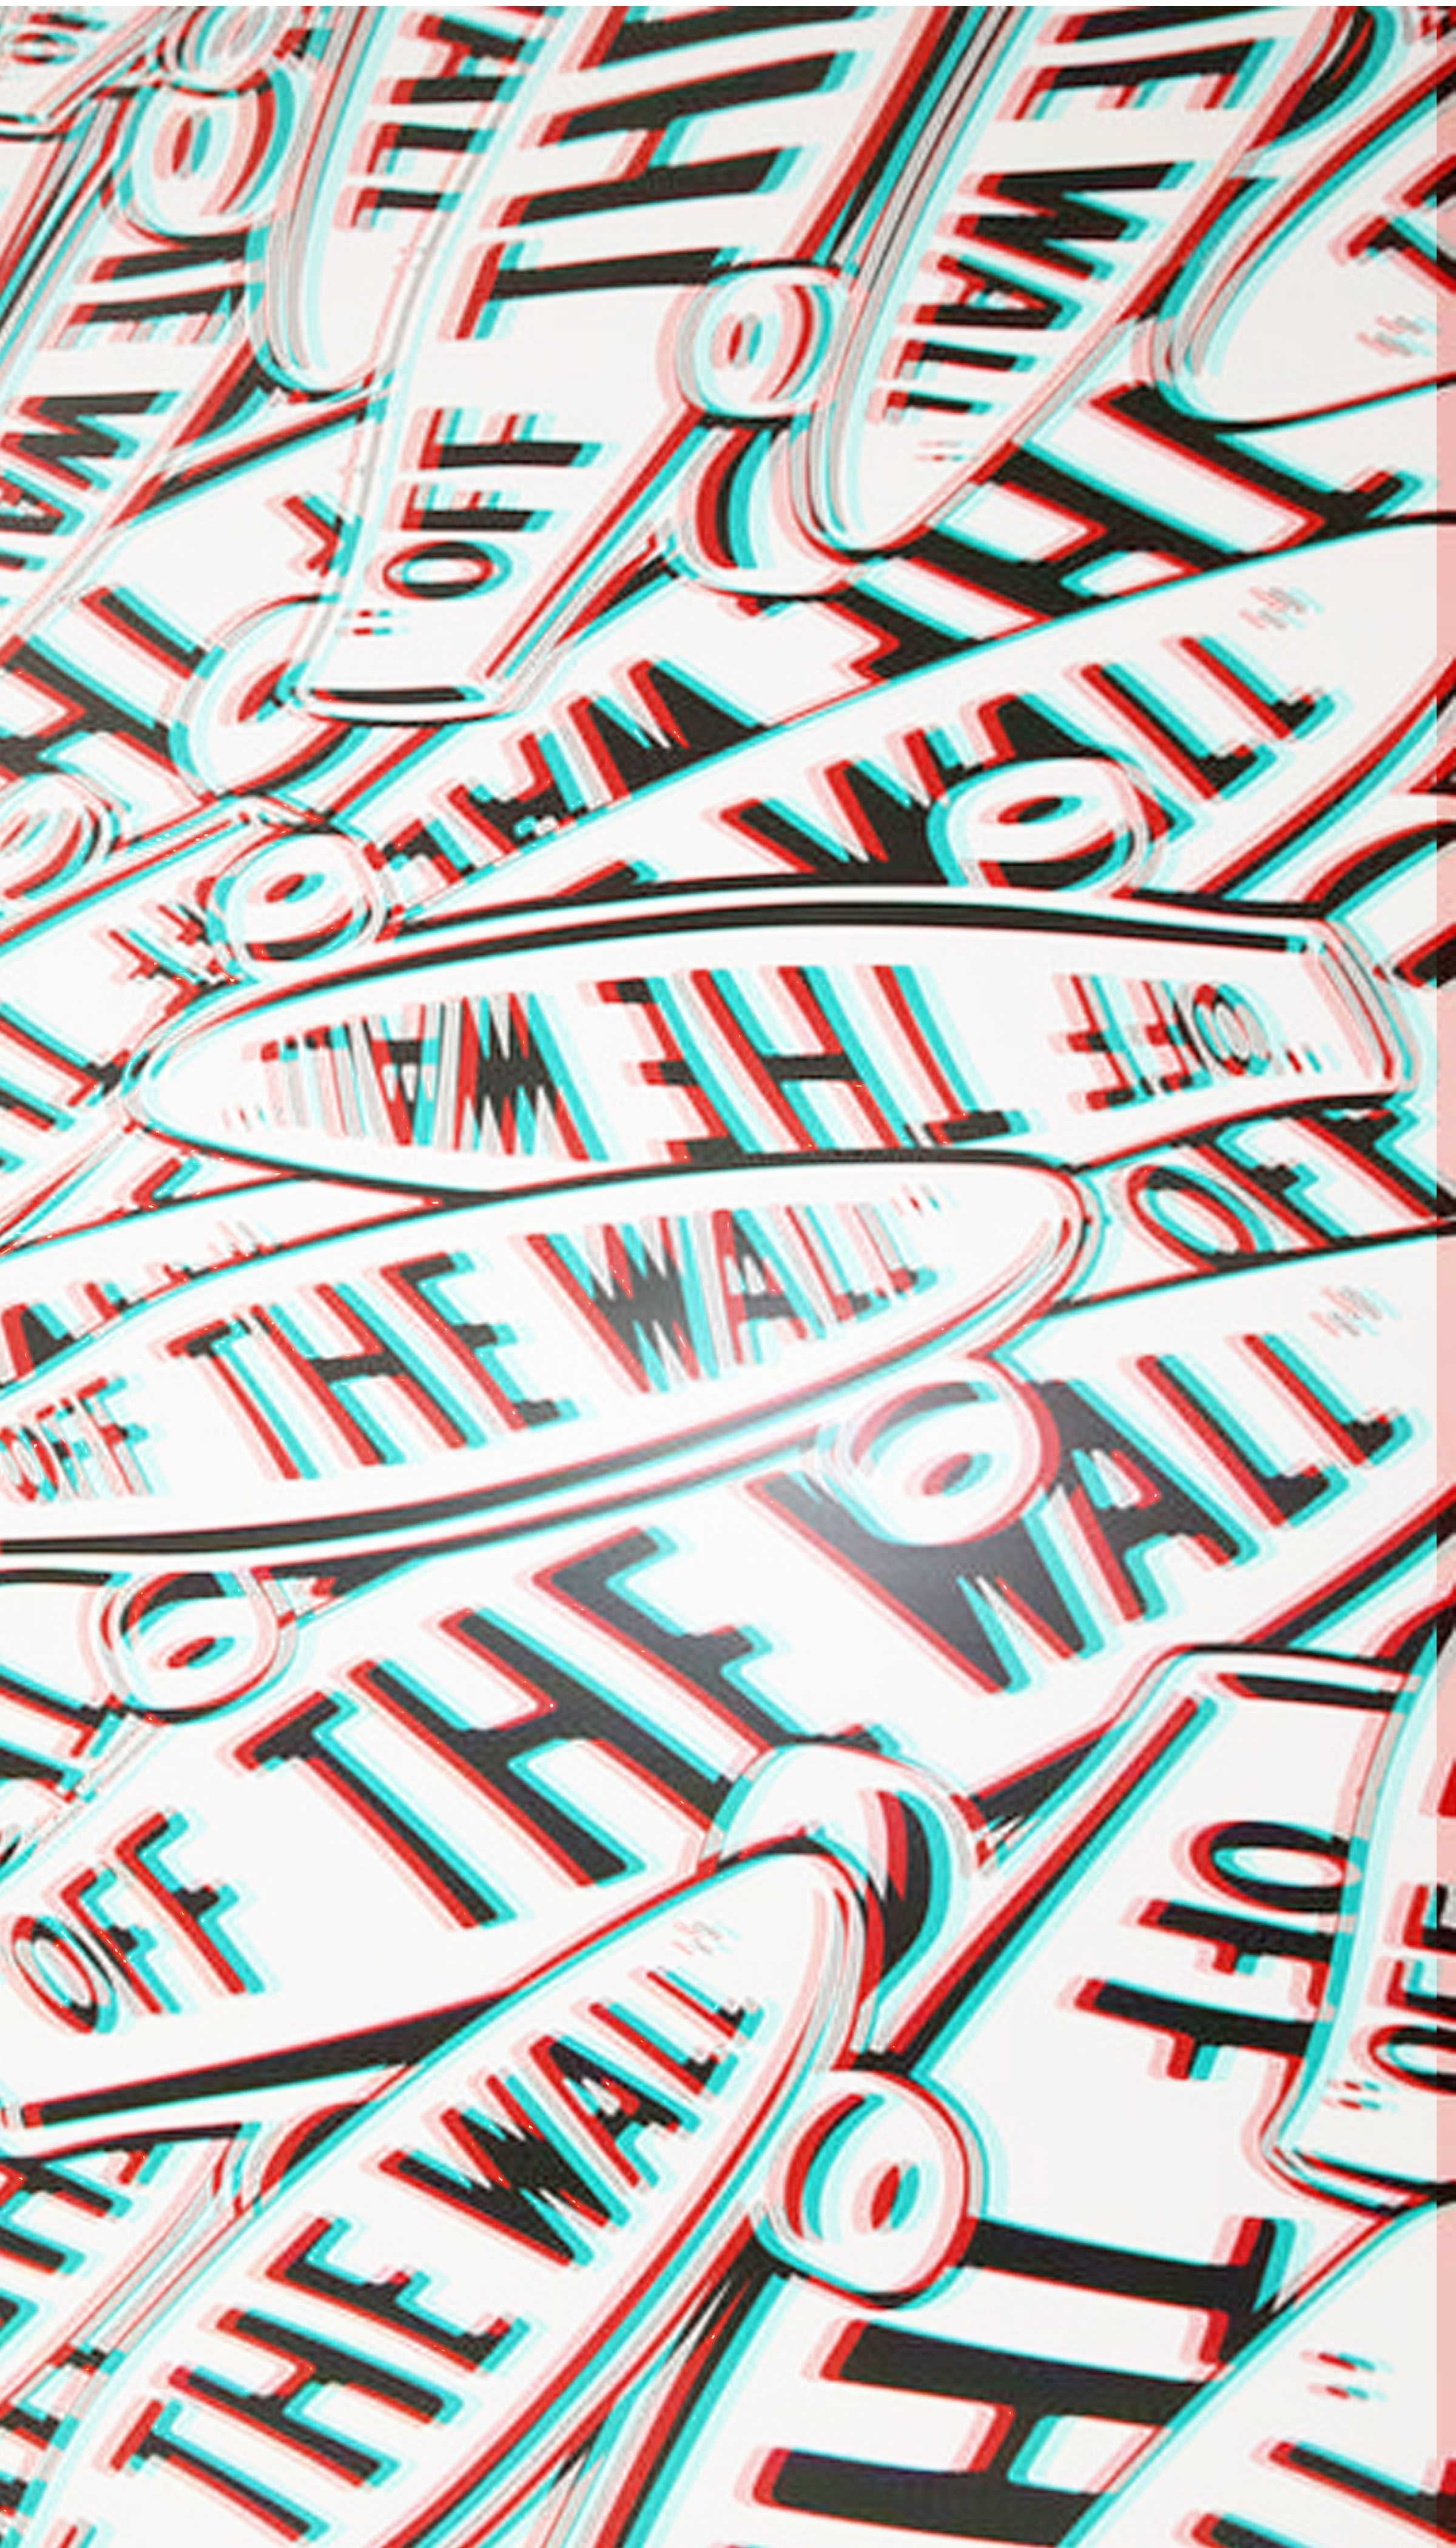 Cool Graffiti Wallpaper Designs Iphone New Vans F The - Vans Off The